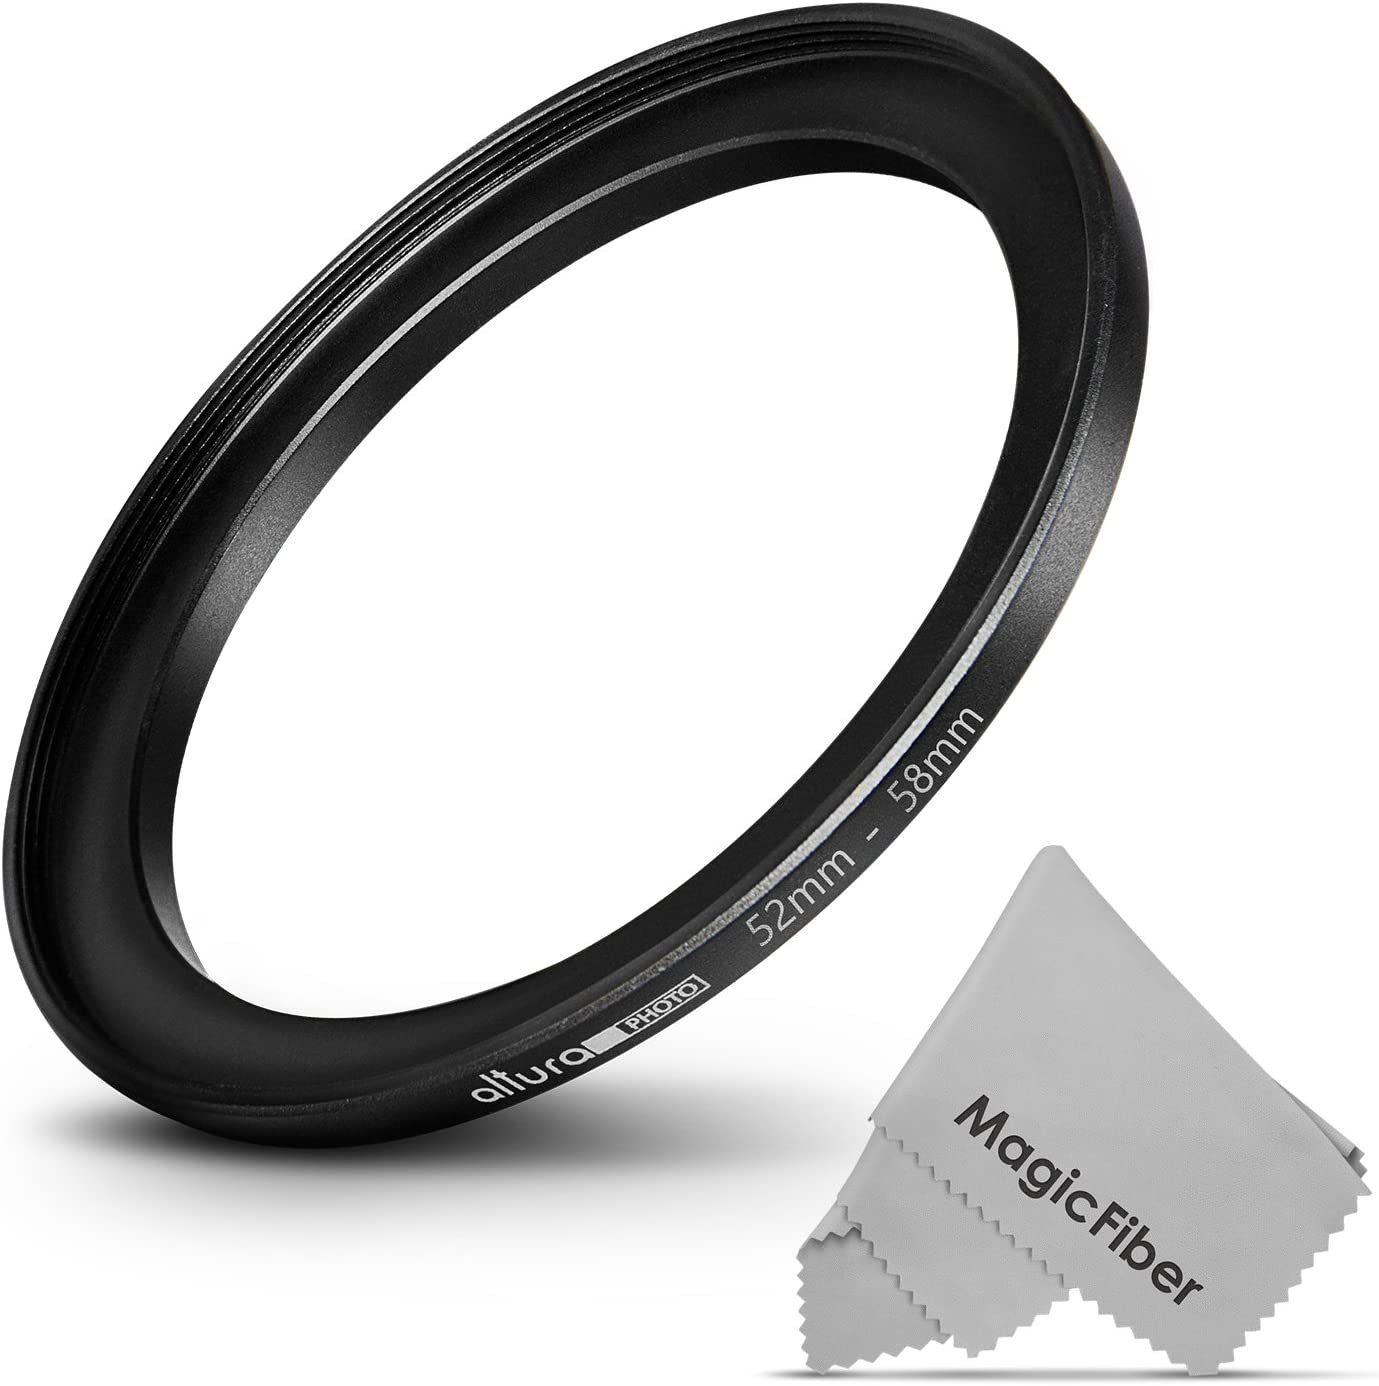 52mm-58mm 52mm to 58mm  52-58mm Step Up Ring Filter Adapter for Camera Lens